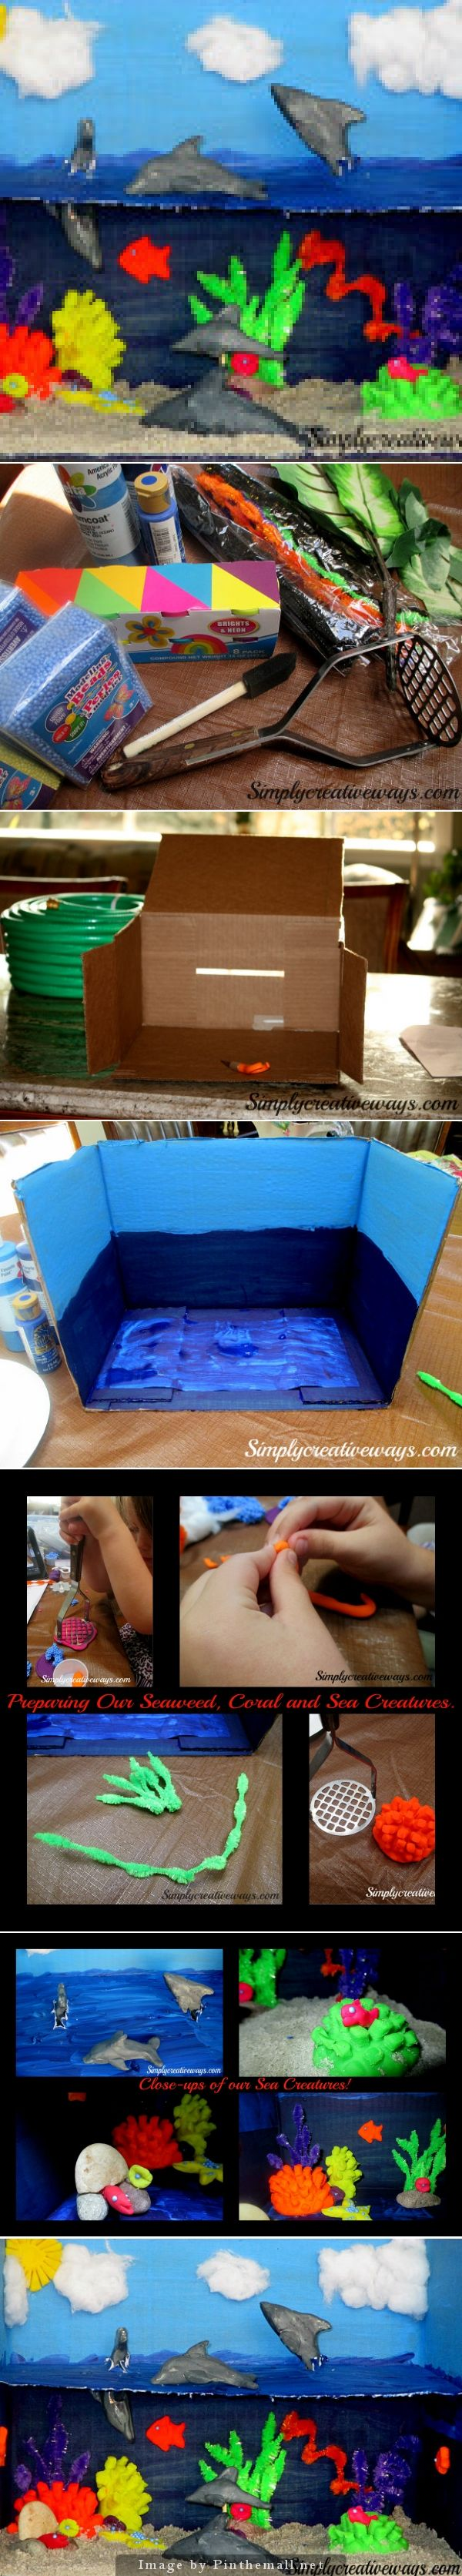 under the sea diorama  http://simplycreativeways.com/dioramas-have-you-ever-made-one/ paint box different blues, dark for under water and lighter for sky. hot glued card stock into middle of box to separate the ocean from sky.paint card both blue paints to create ocean water.used chenille stems bent at different heights to look like seaweed. rolled play-doh into balls and mashed them with a potato masher to create our coral. rocks glued together for home for eel  play-doh fish, clams…